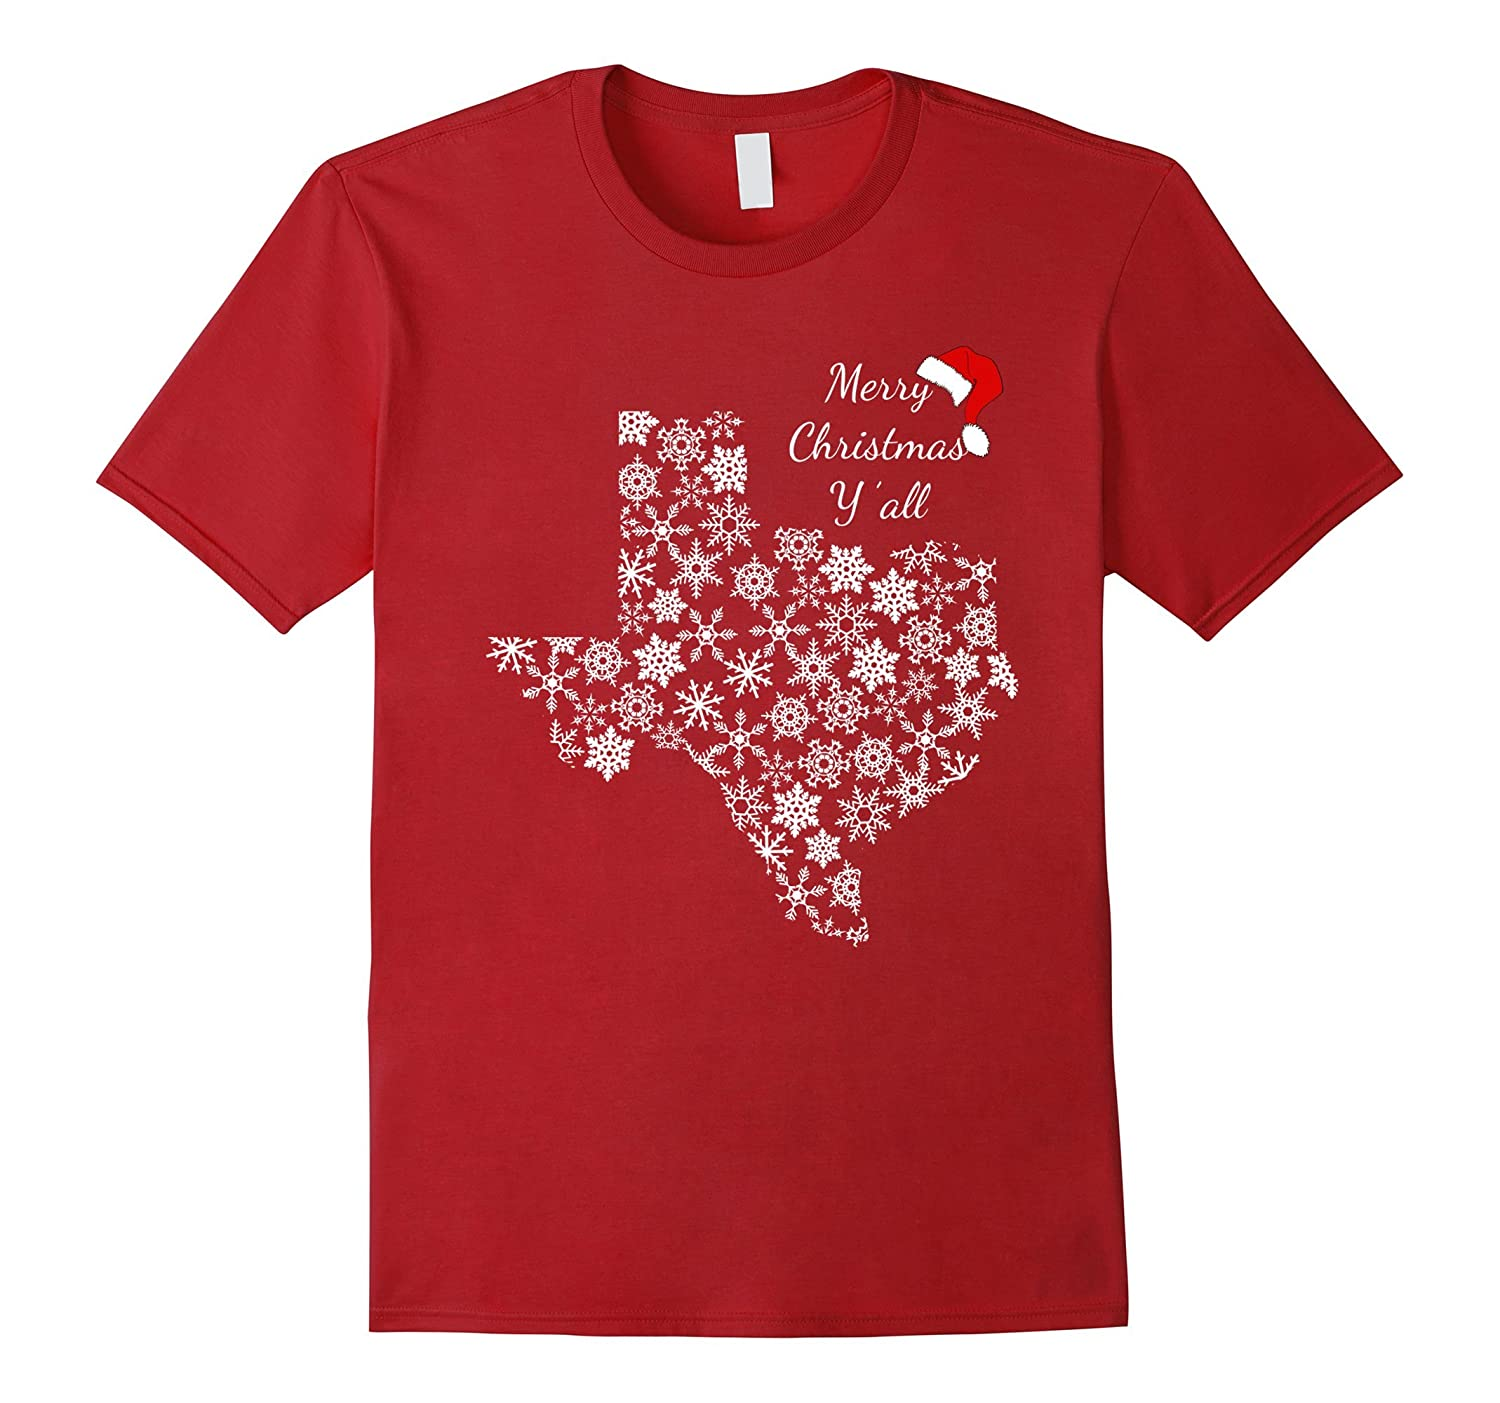 Texas Christmas Shirts & T-Shirt Design for xmas party gift-ANZ ...